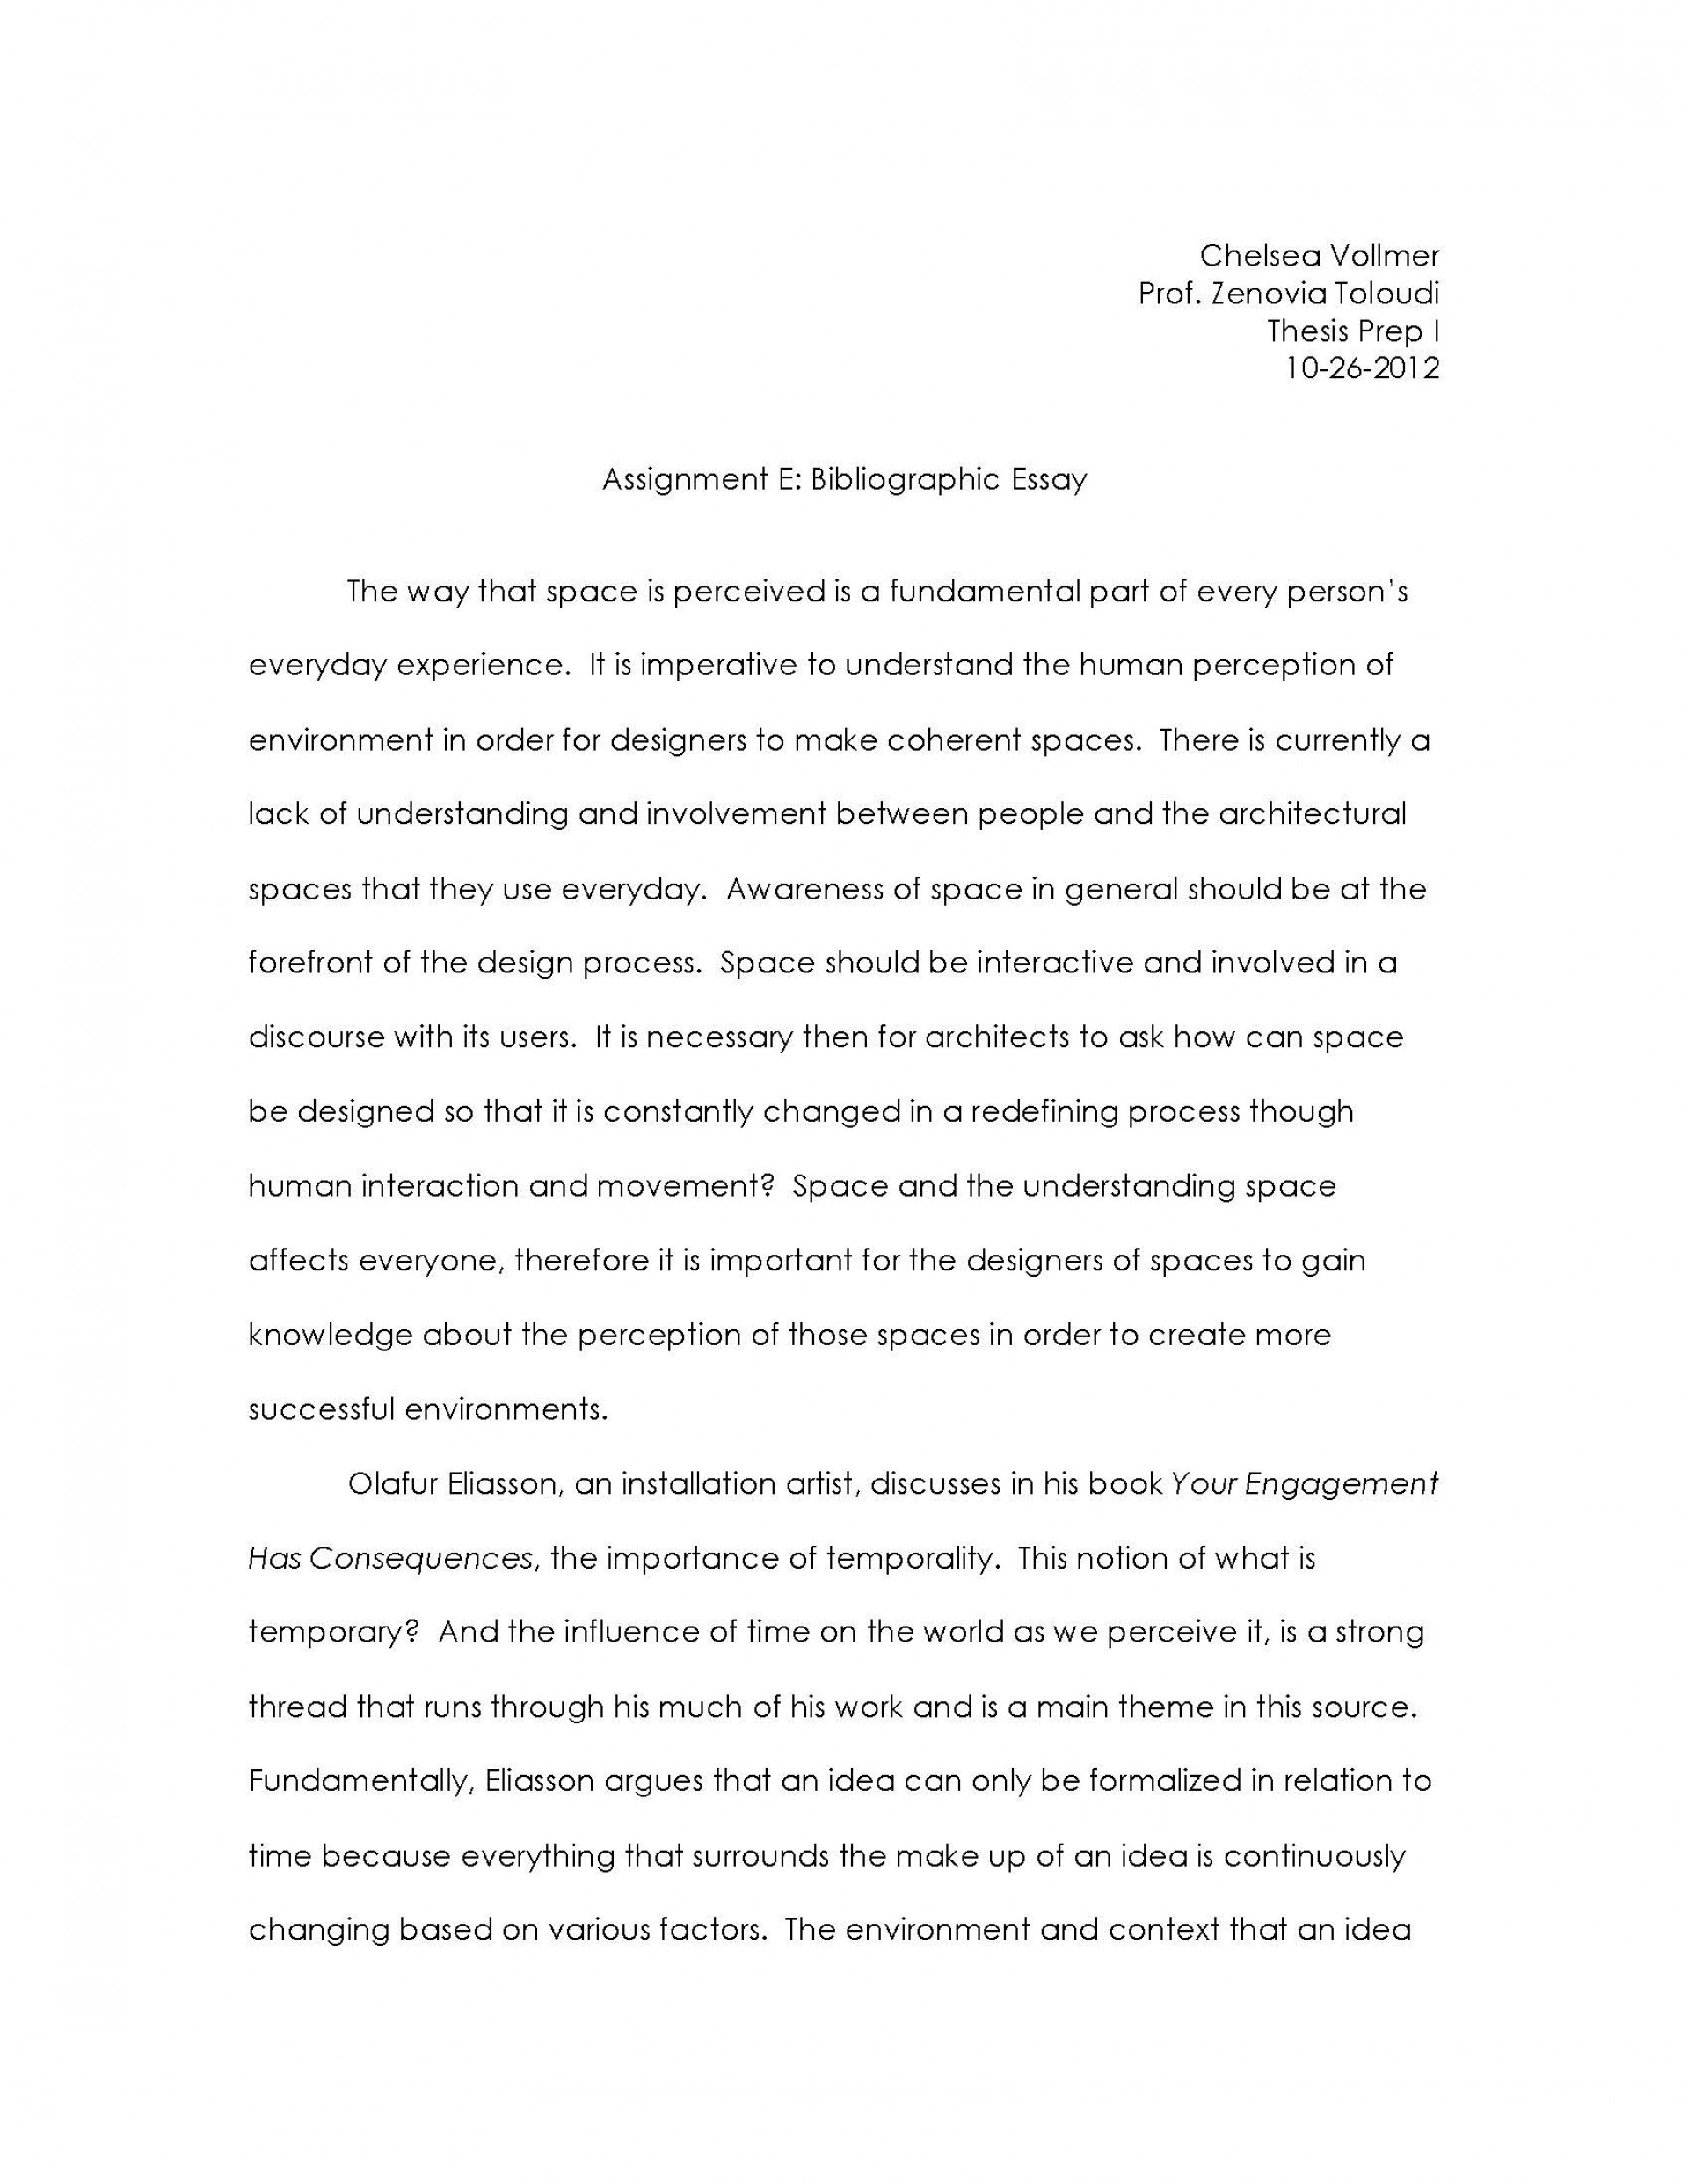 013 Essay Example Assignment E Page 12 Satire Fearsome Essays About High School Examples On Gun Control 1920